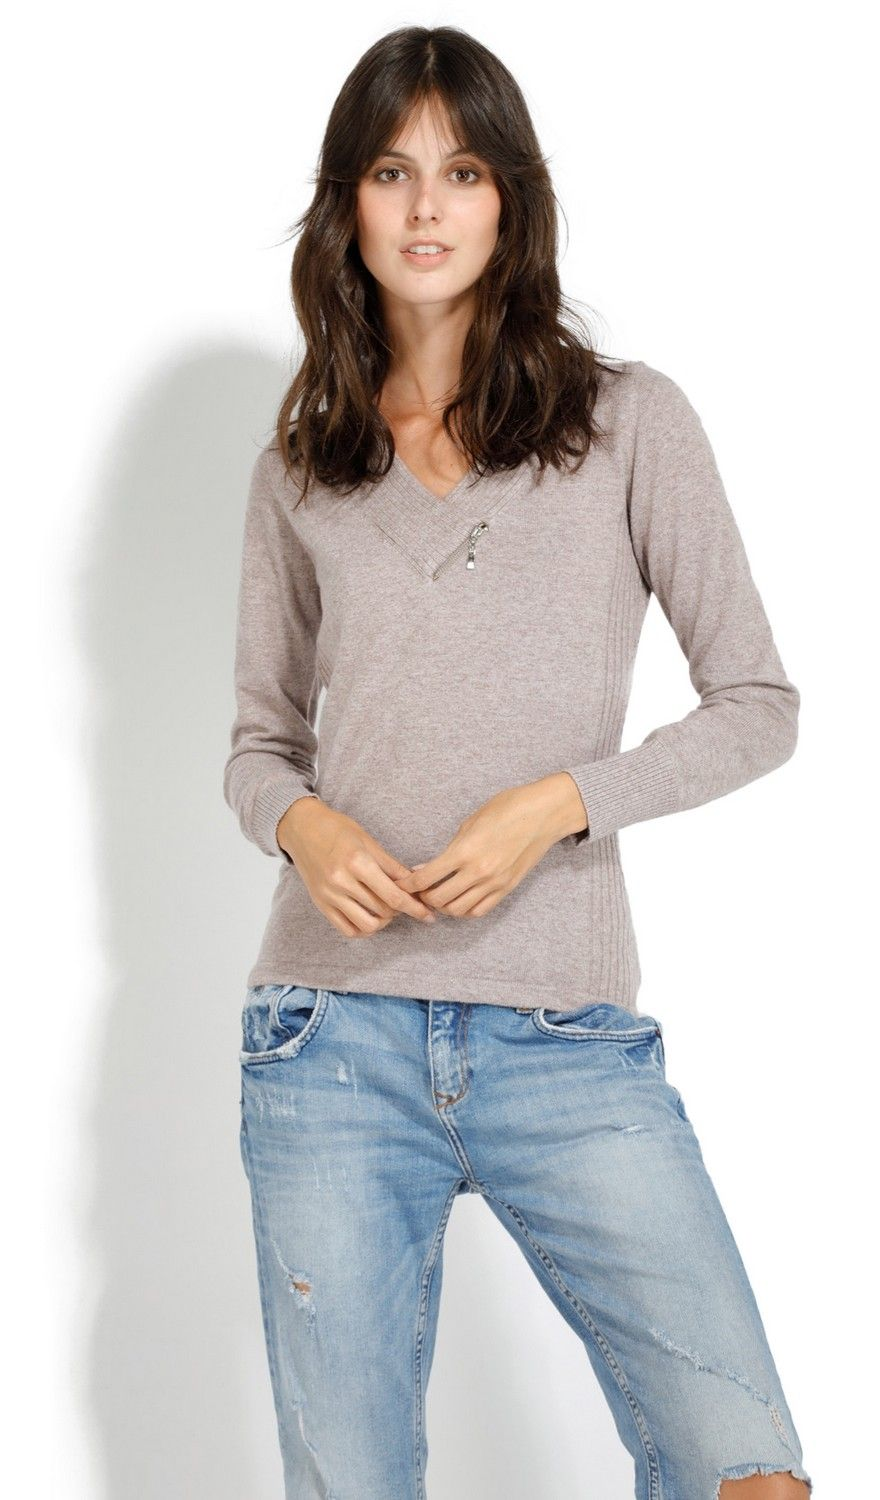 Assuili V-Neck Long Sleeve Zip Detail Sweater in Beige